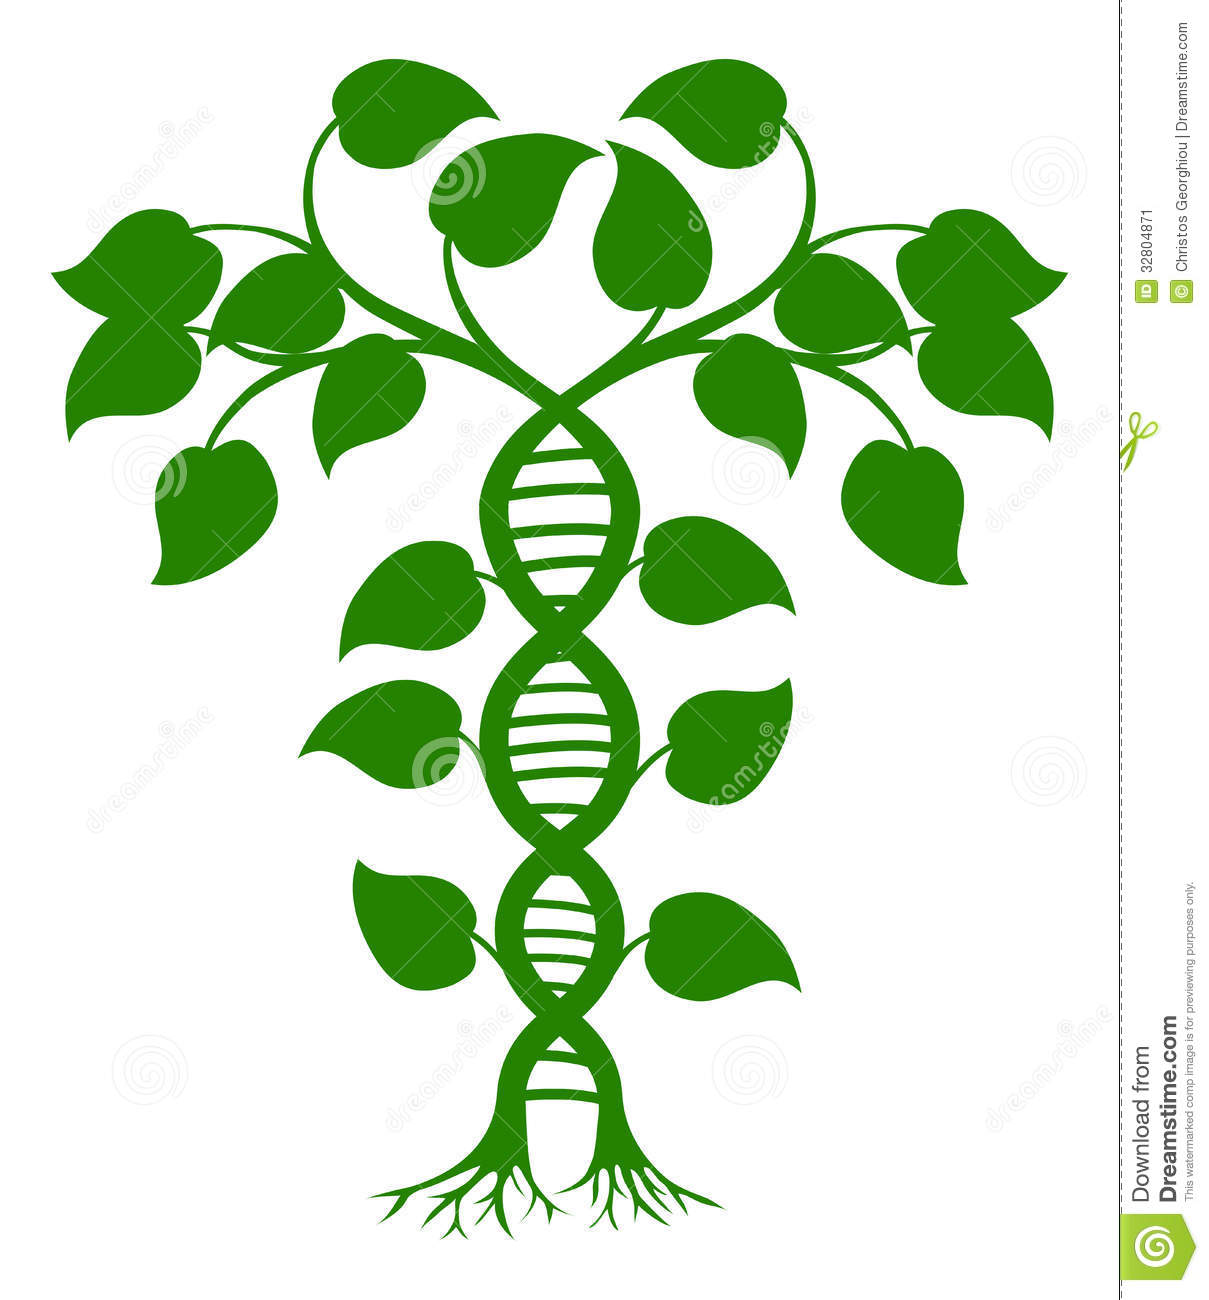 Green tree illustration with the trees or vines forming a DNA double ...